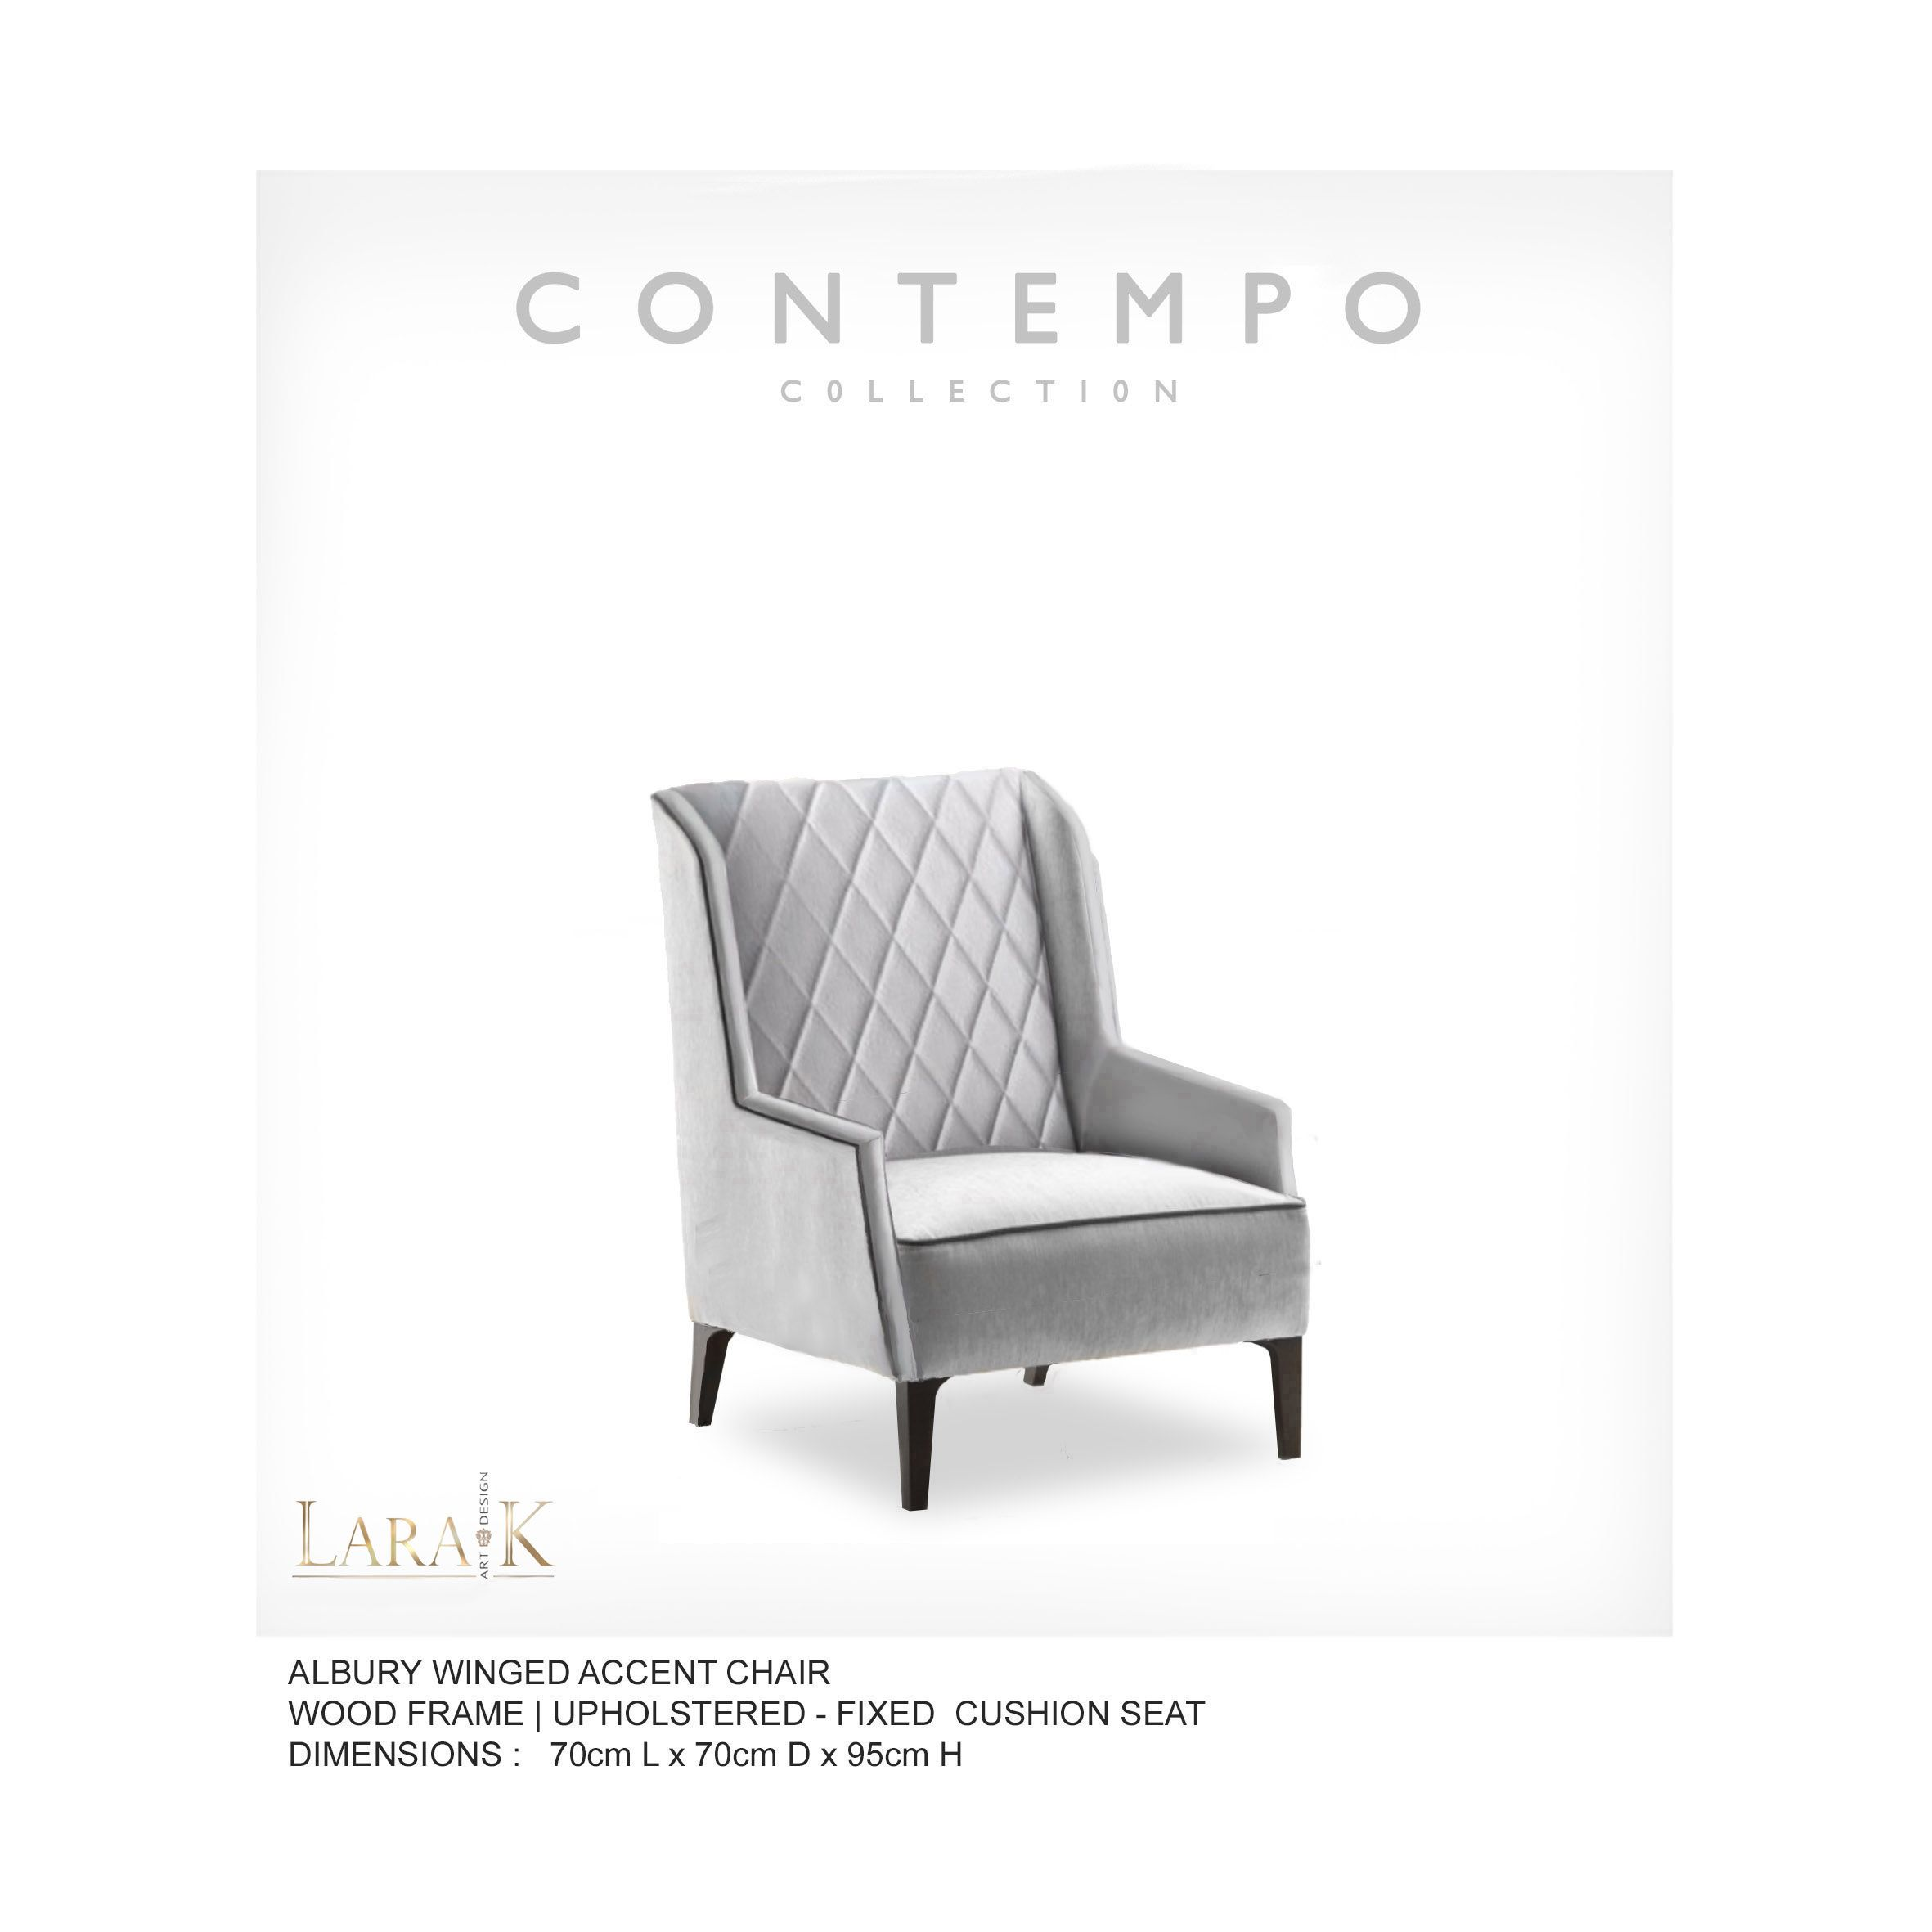 Lr Albury Wing Accent Arm Chair The Contempo Collection Was